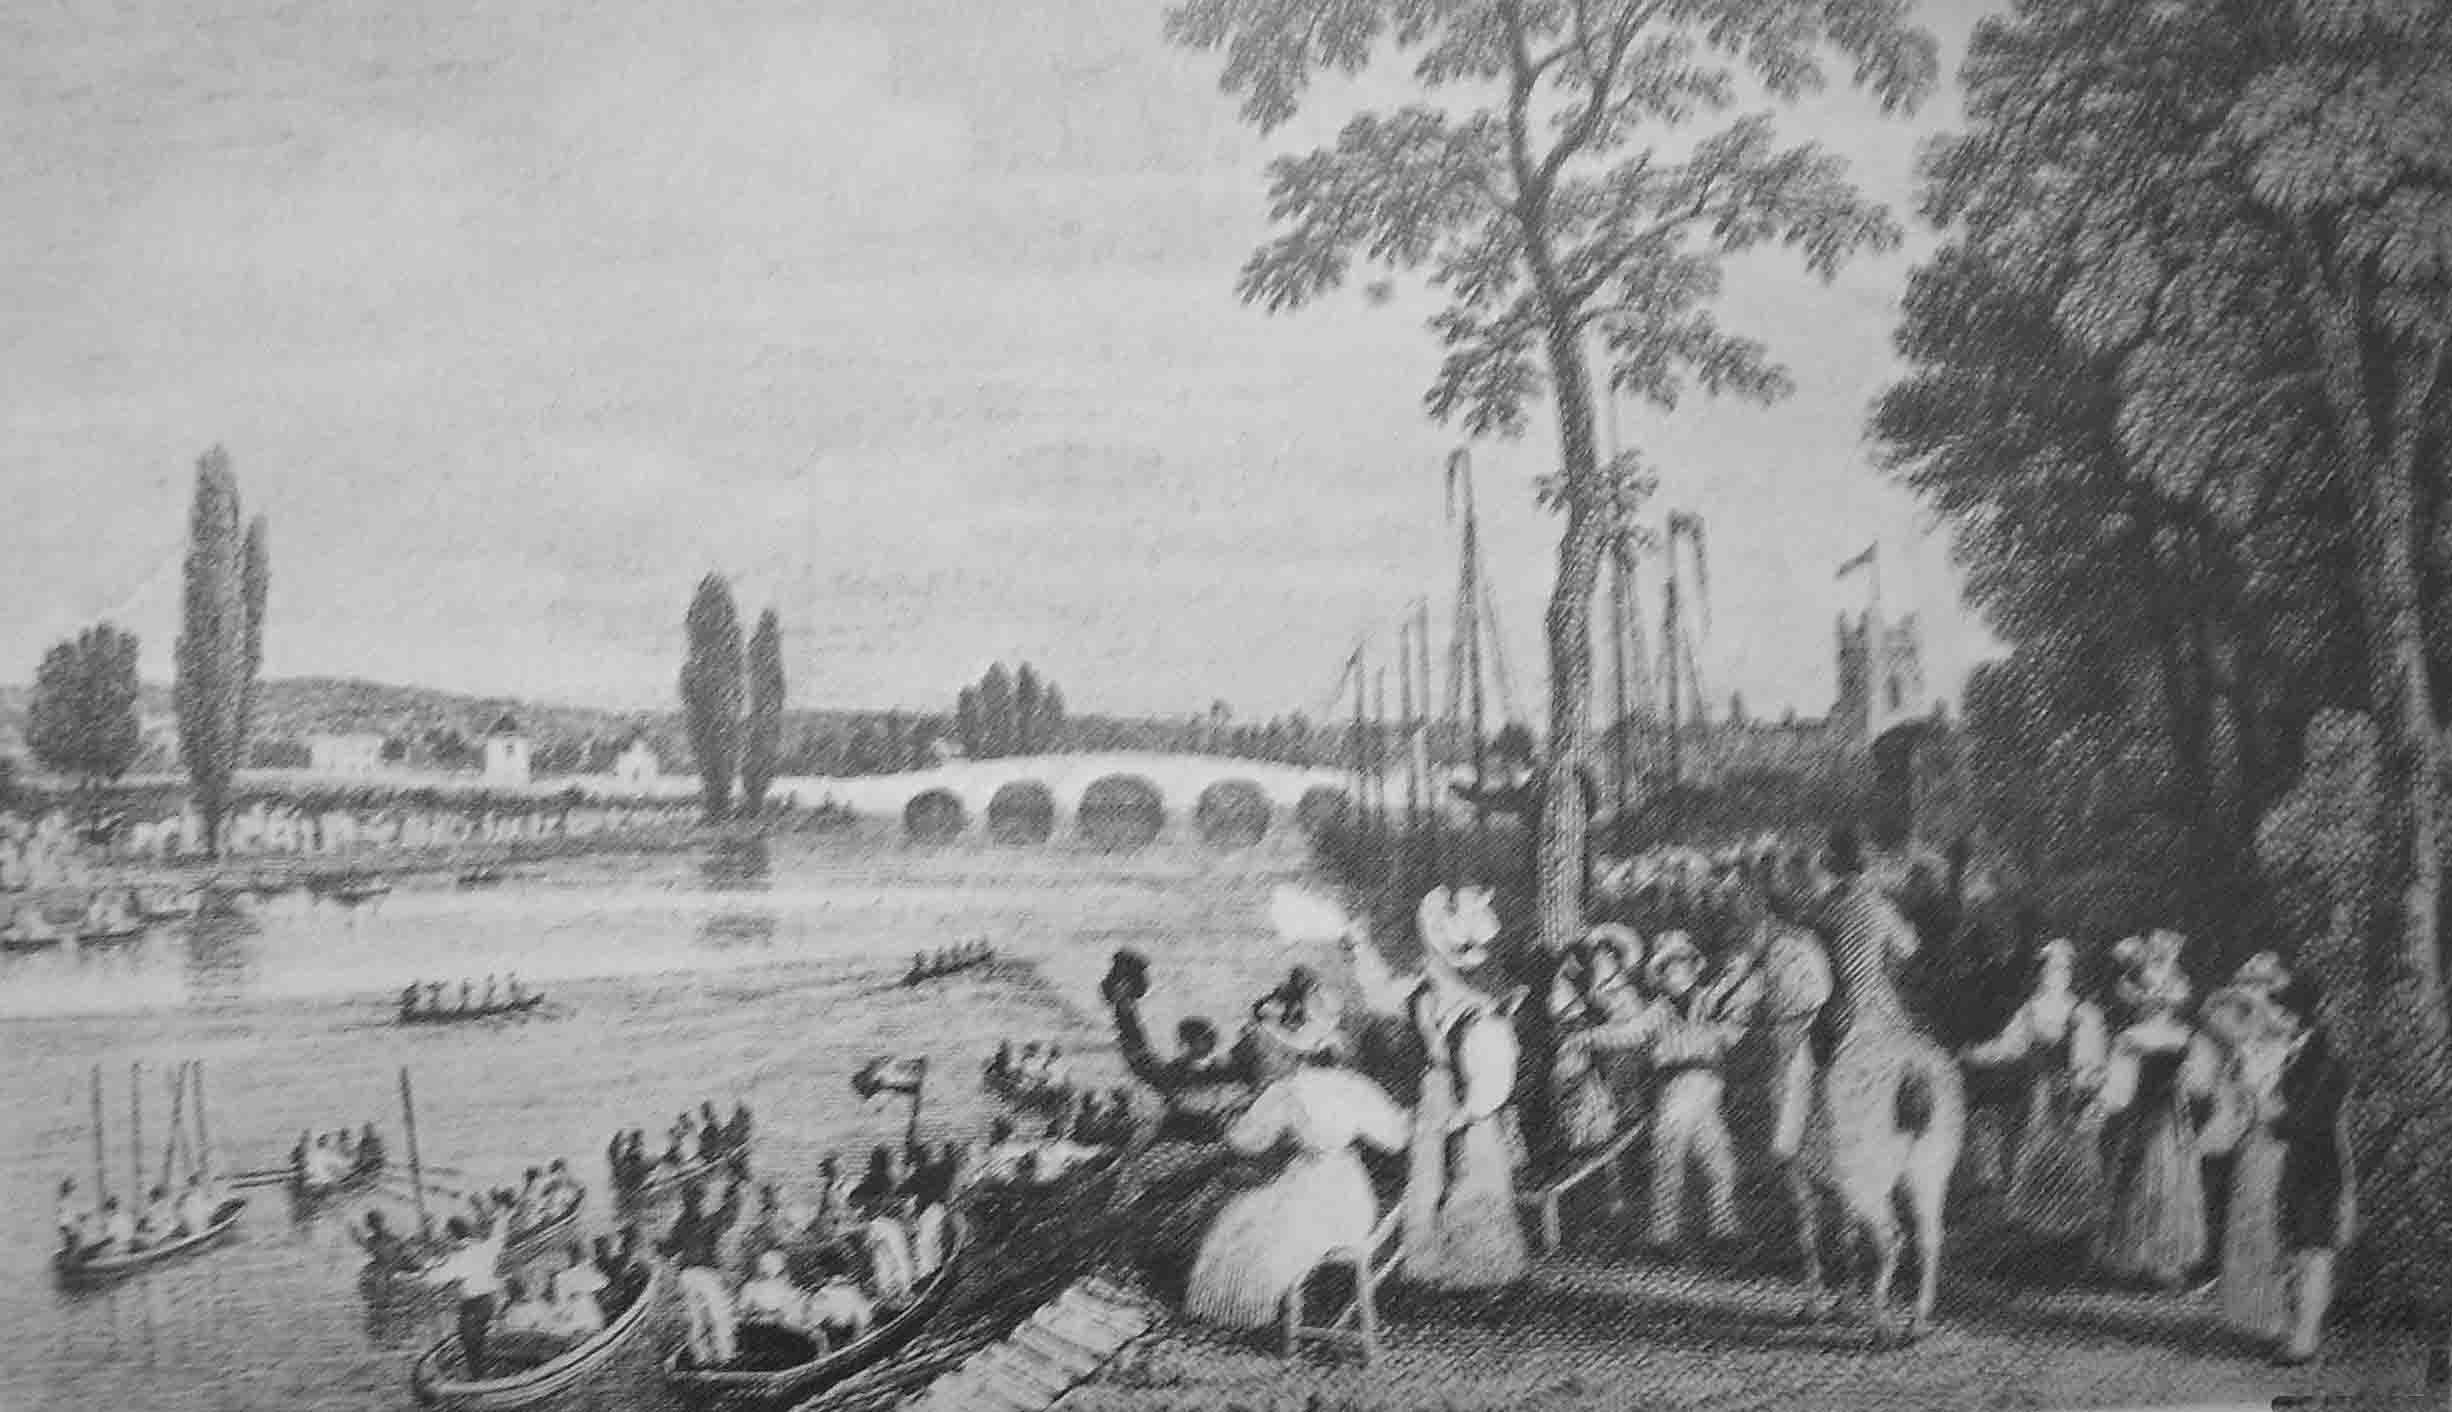 Boat race finish, Henley 1829